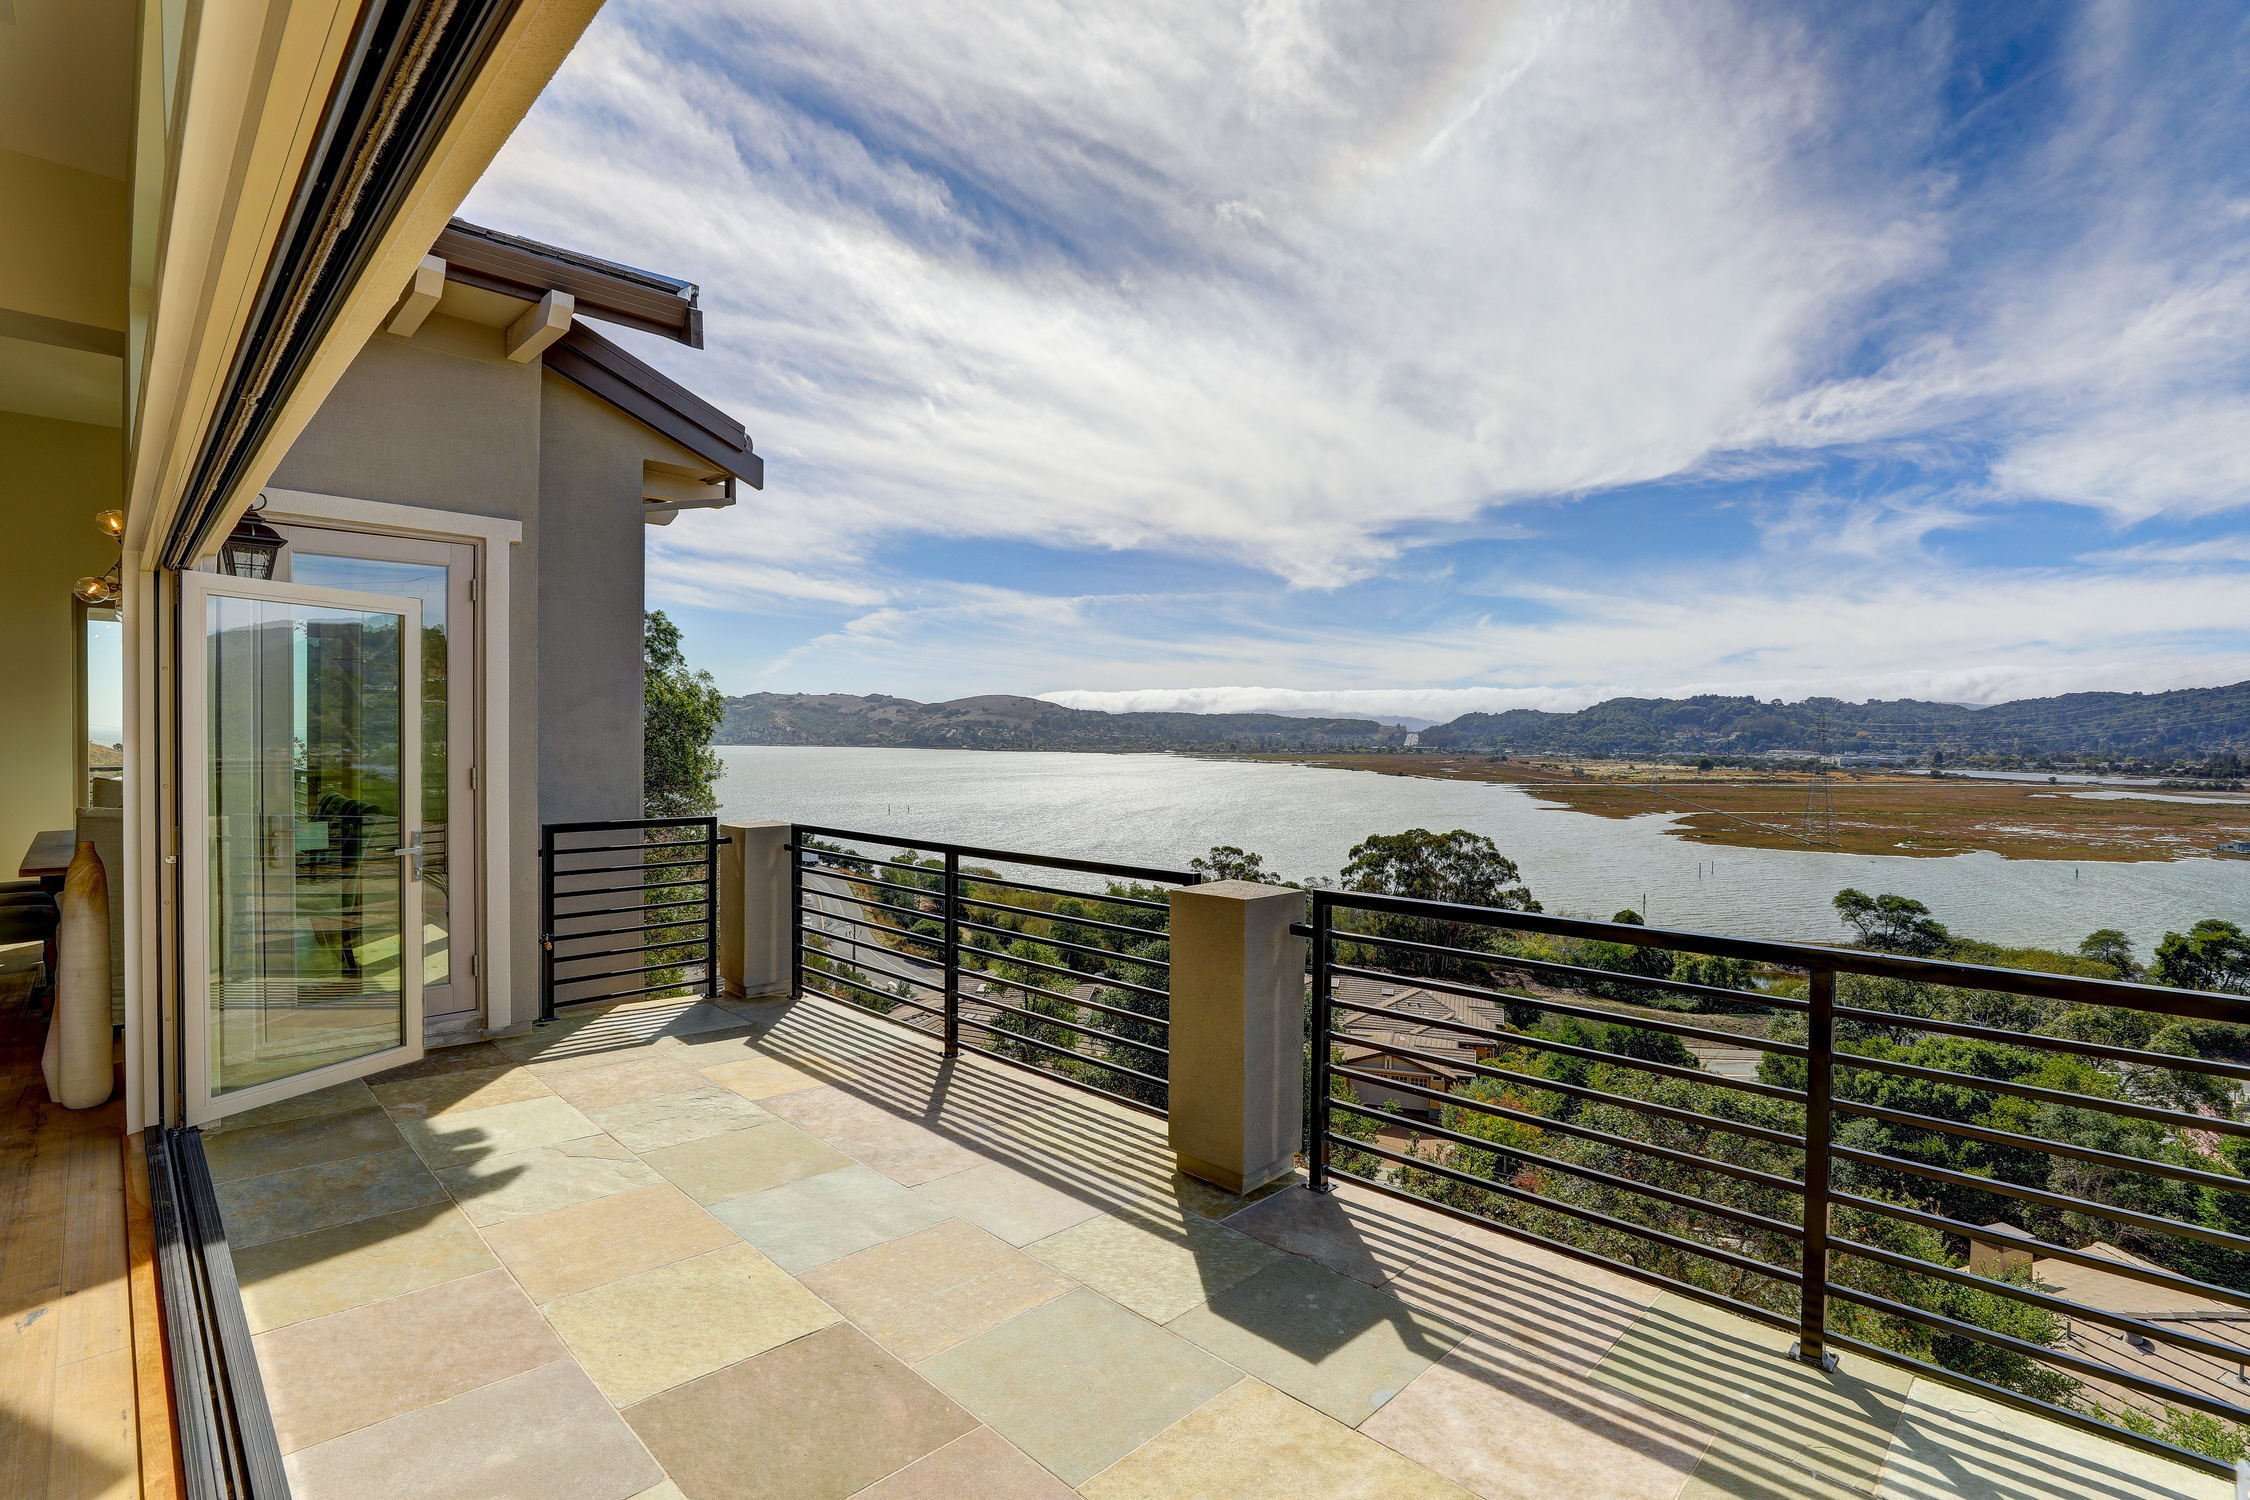 31 Drakes Cove, Larkspur Homes for Sale27 MLS - Own Marin with Compass - Mill Valley Realtor.jpg